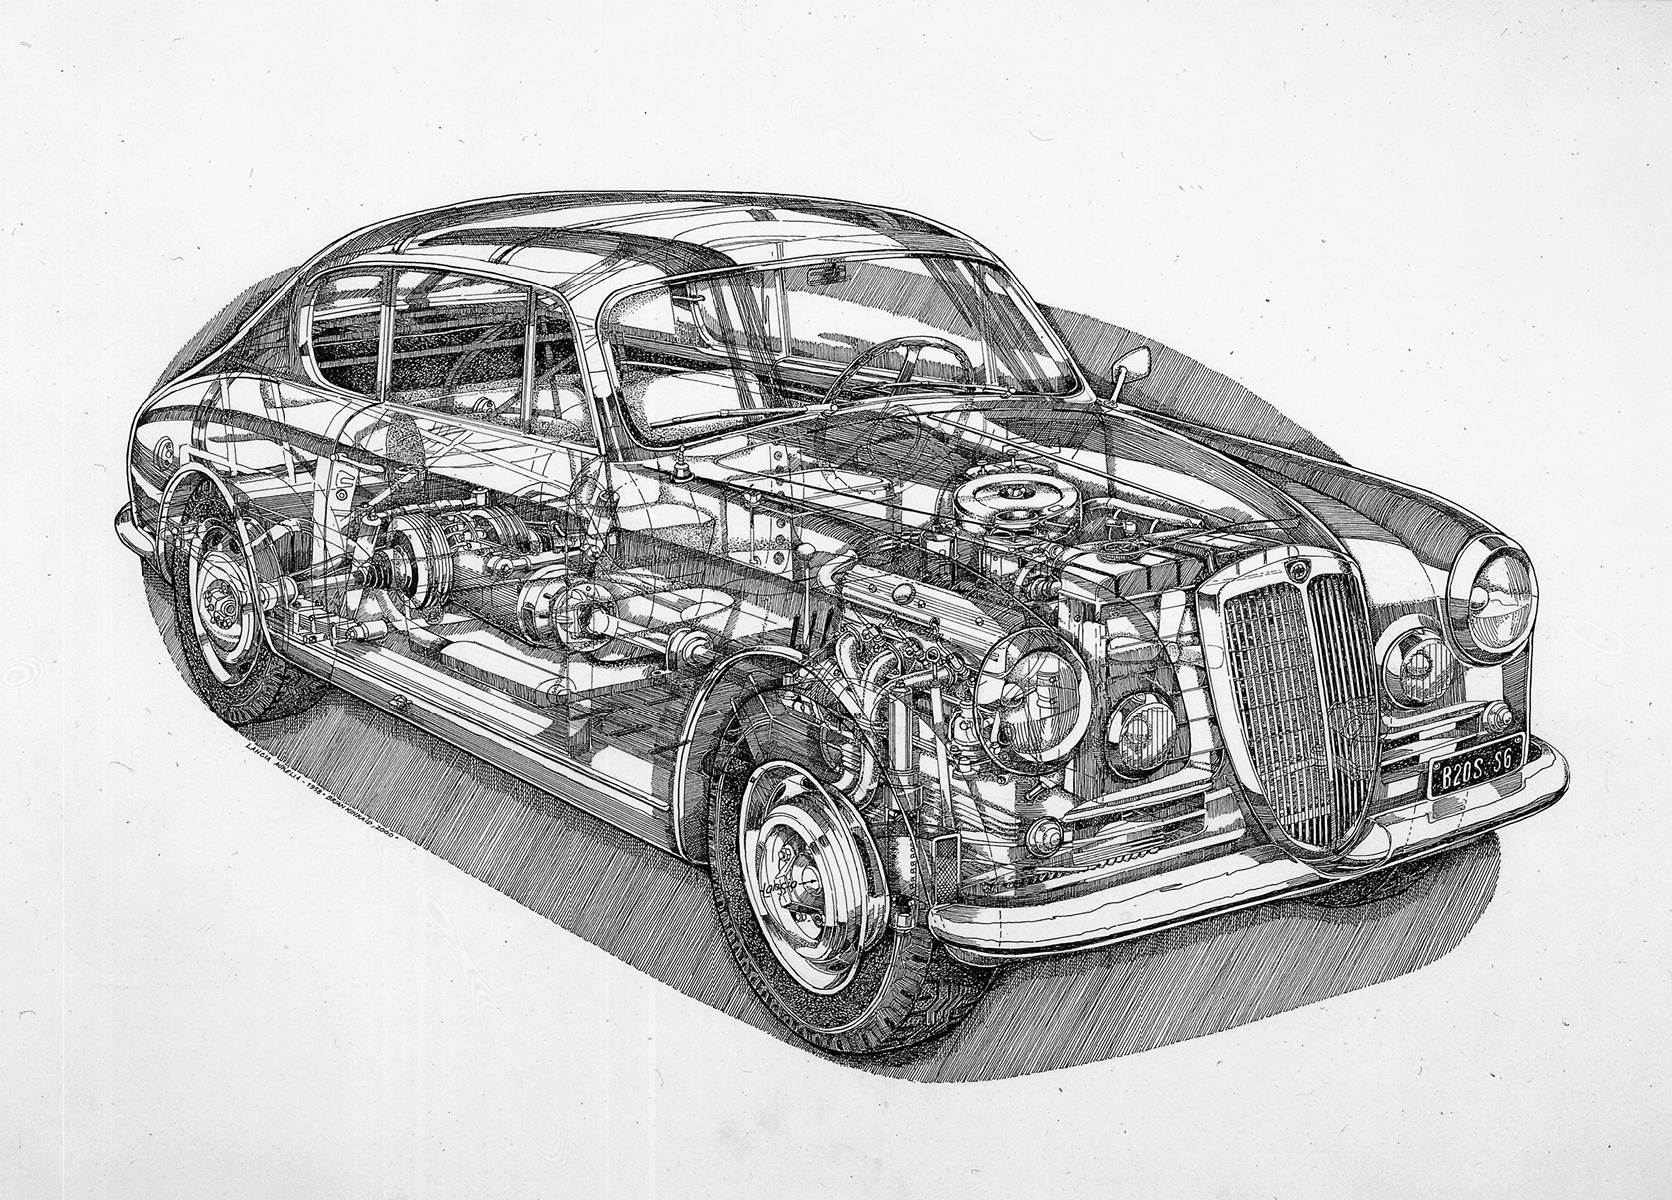 1957 lancia aurelia b20s ser byron riginos weblog the b20s6 cutout drawing reveals many of the technical innovations introduced by the lancia marque at vanachro Choice Image